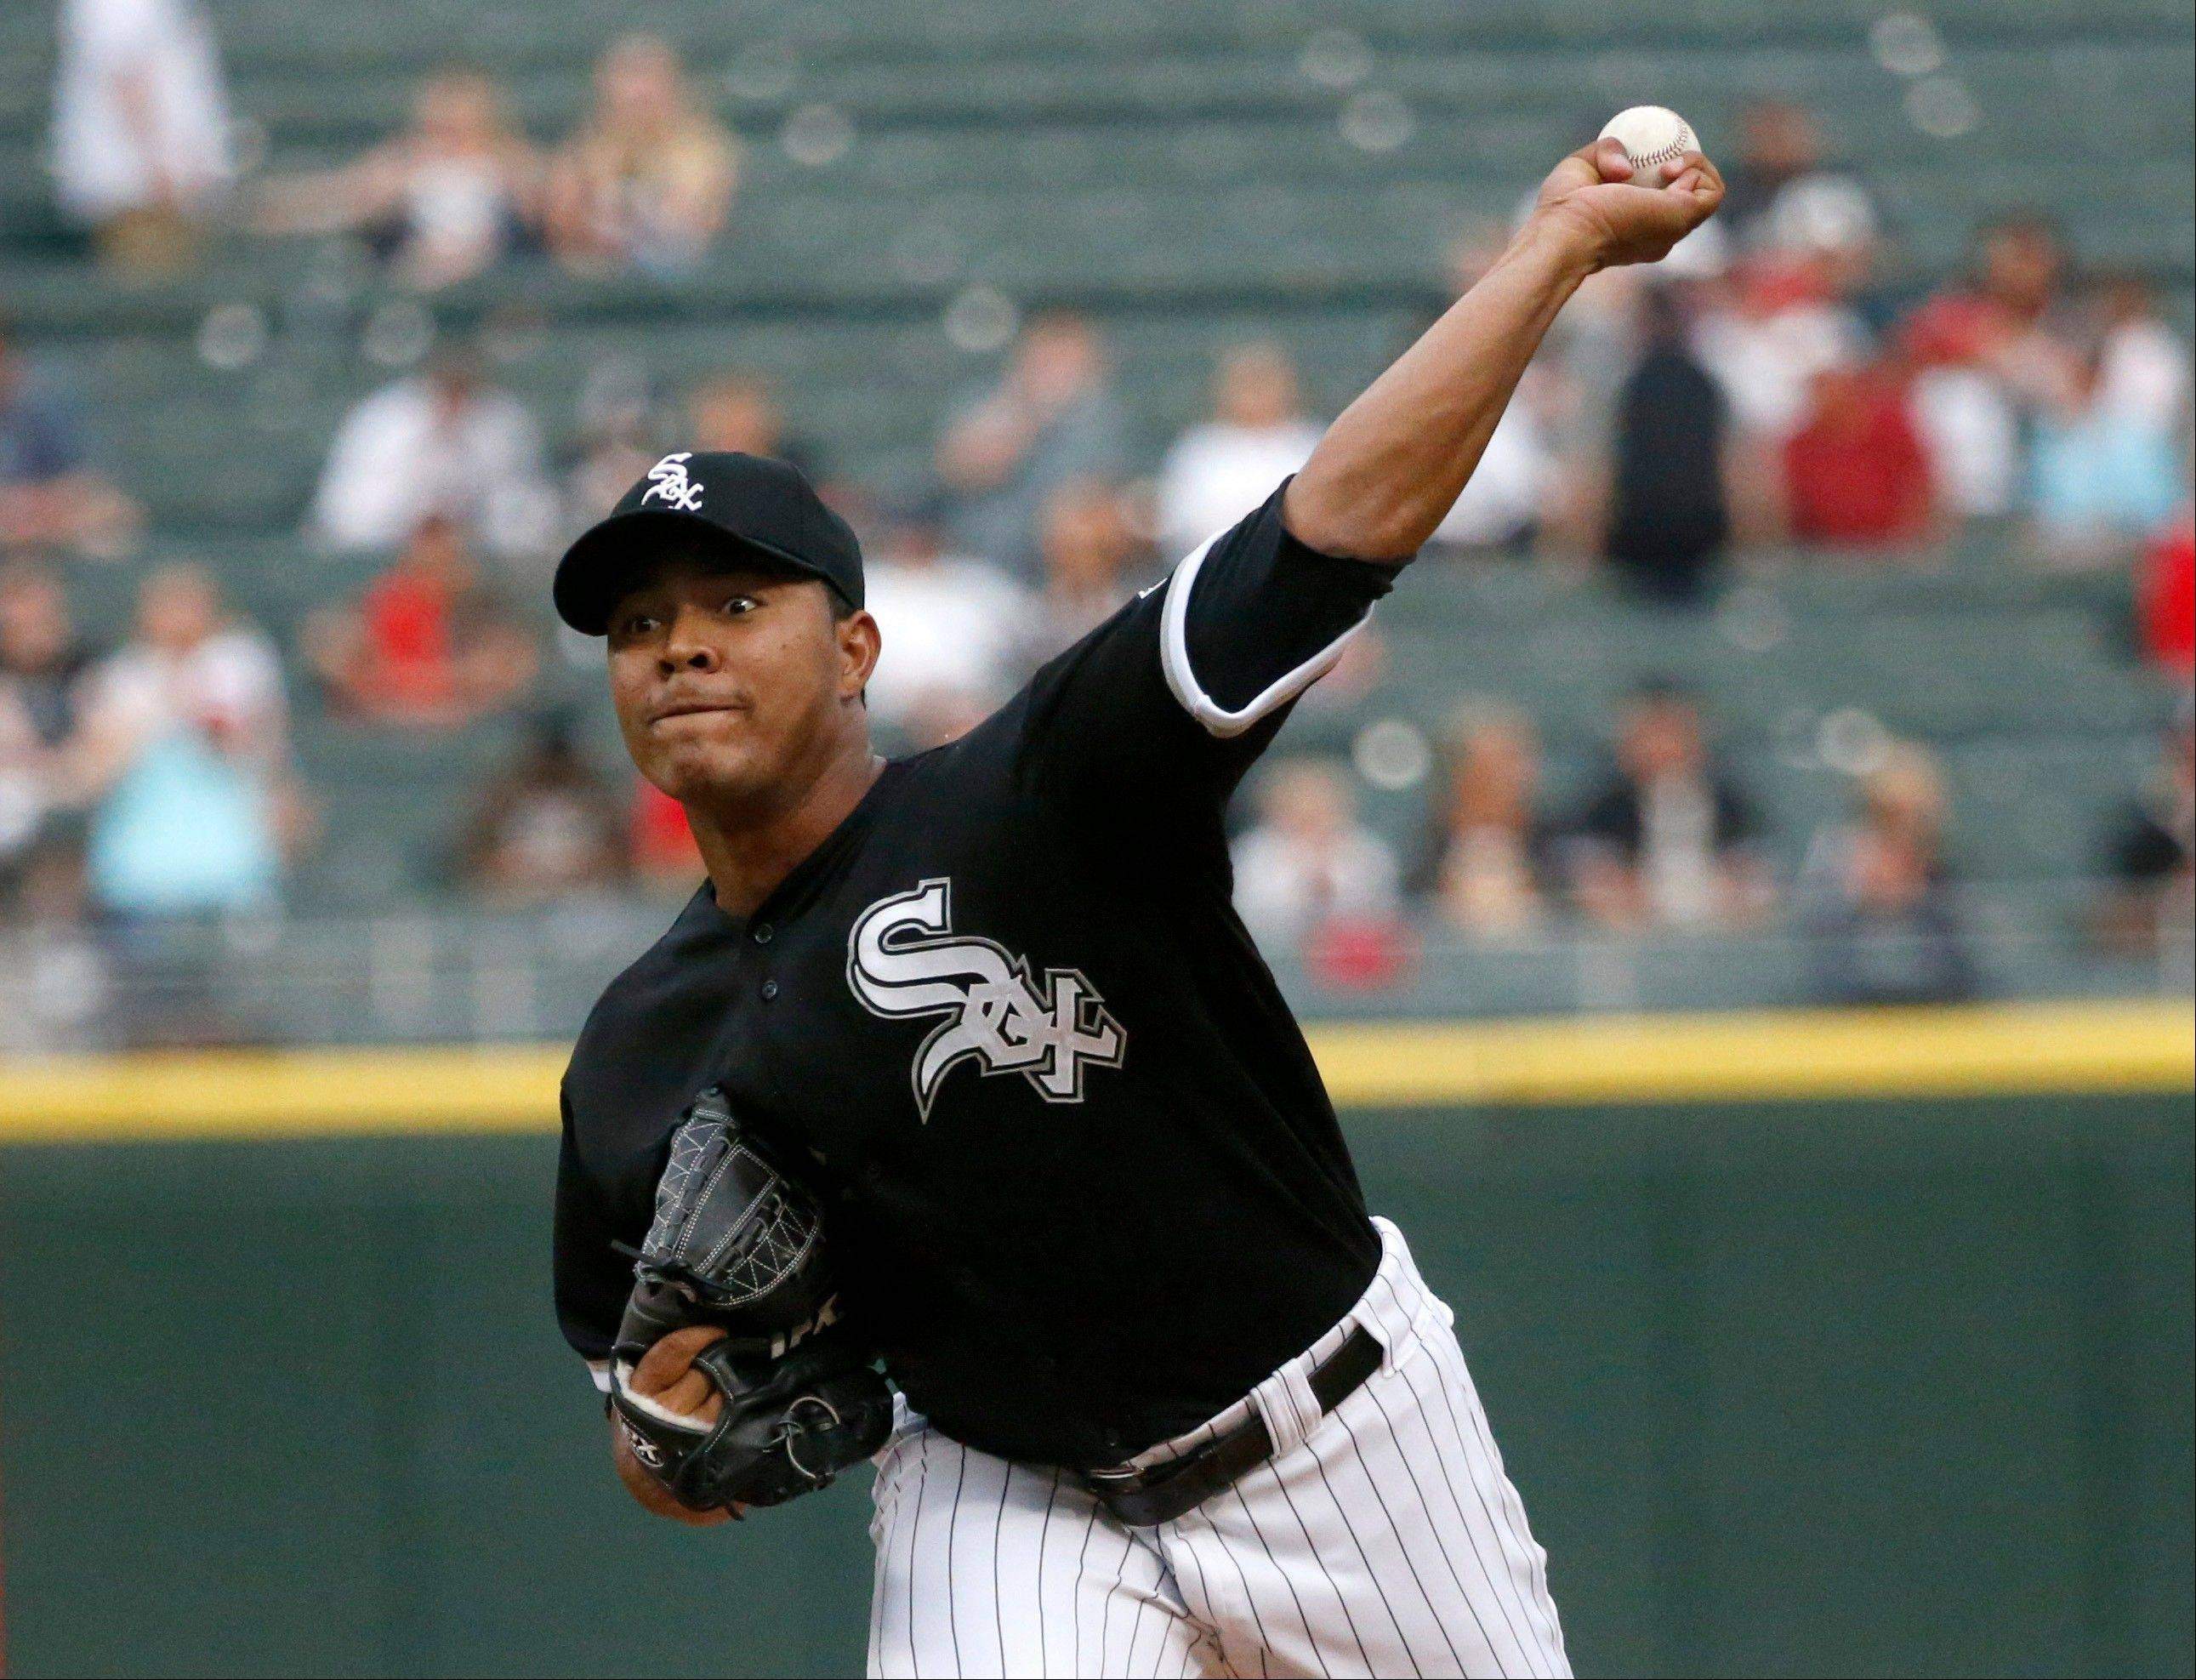 Associated Press Chicago White Sox starting pitcher Jose Quintana delivers during the first inning of a baseball game against the Kansas City Royals, Friday, July 26, 2013, in Chicago.